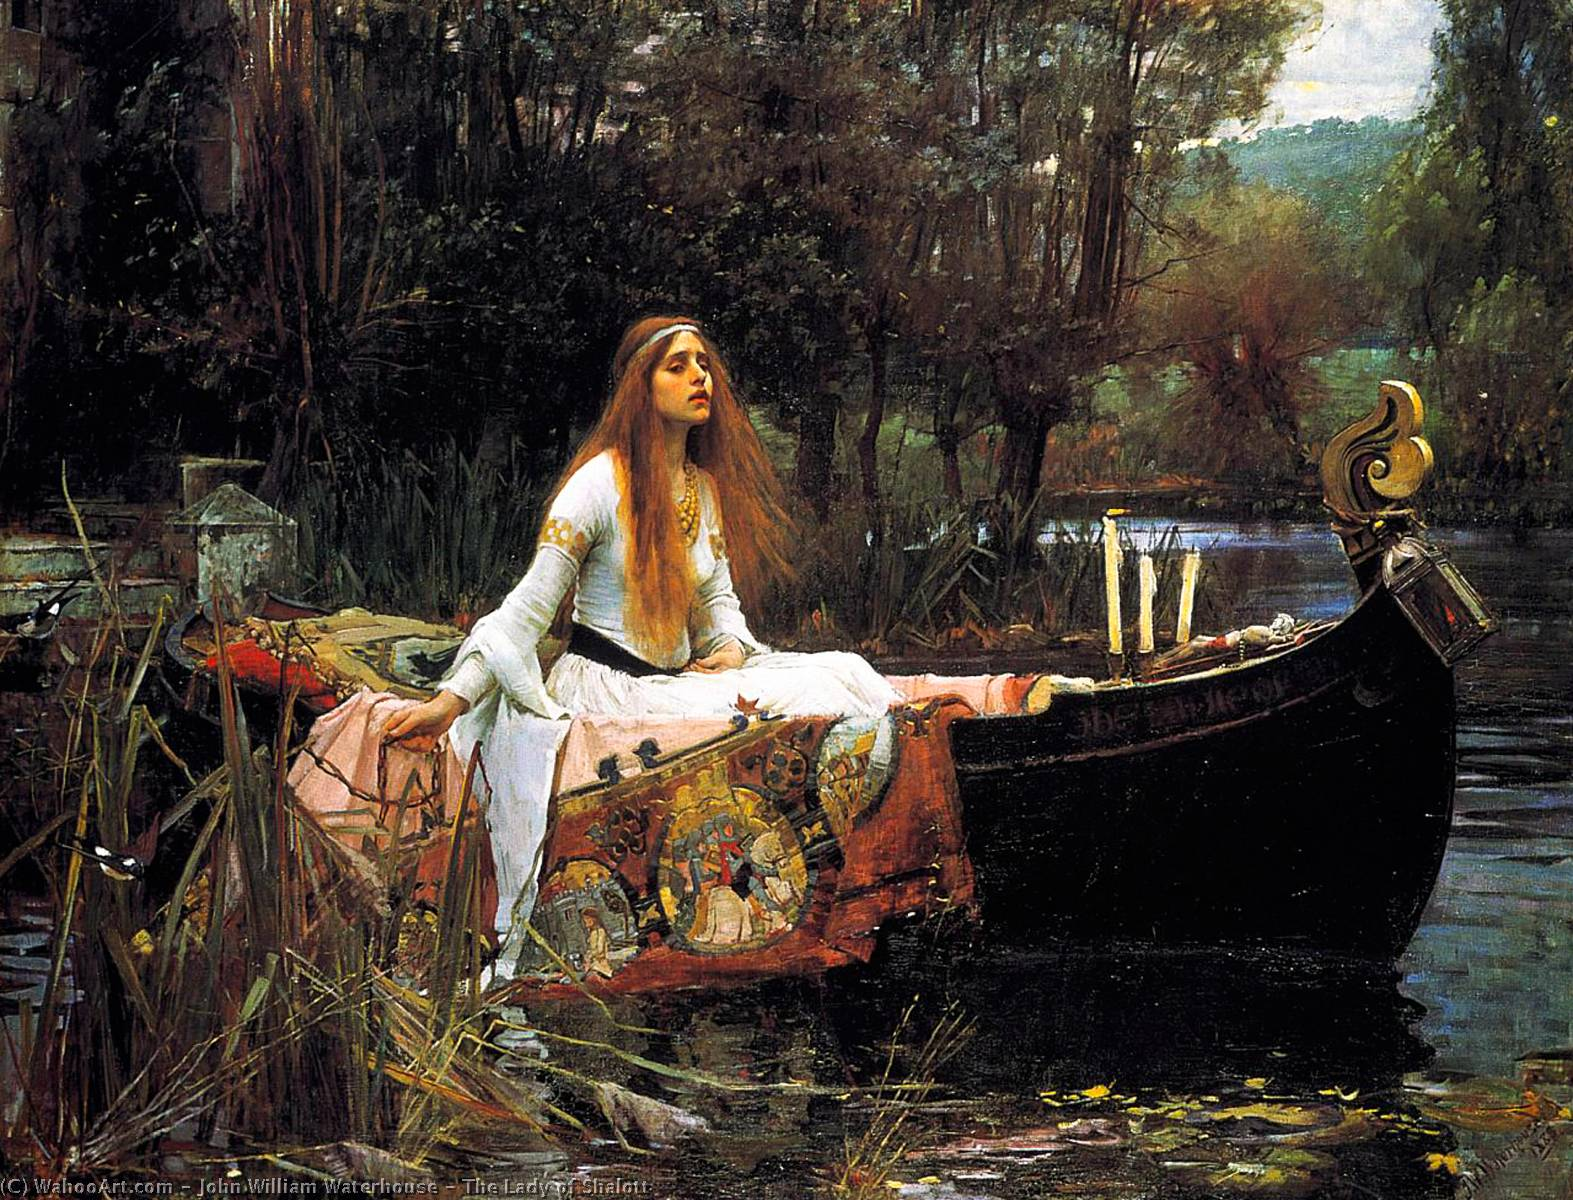 Order Reproductions | The Lady of Shalott by John William Waterhouse | Most-Famous-Paintings.com